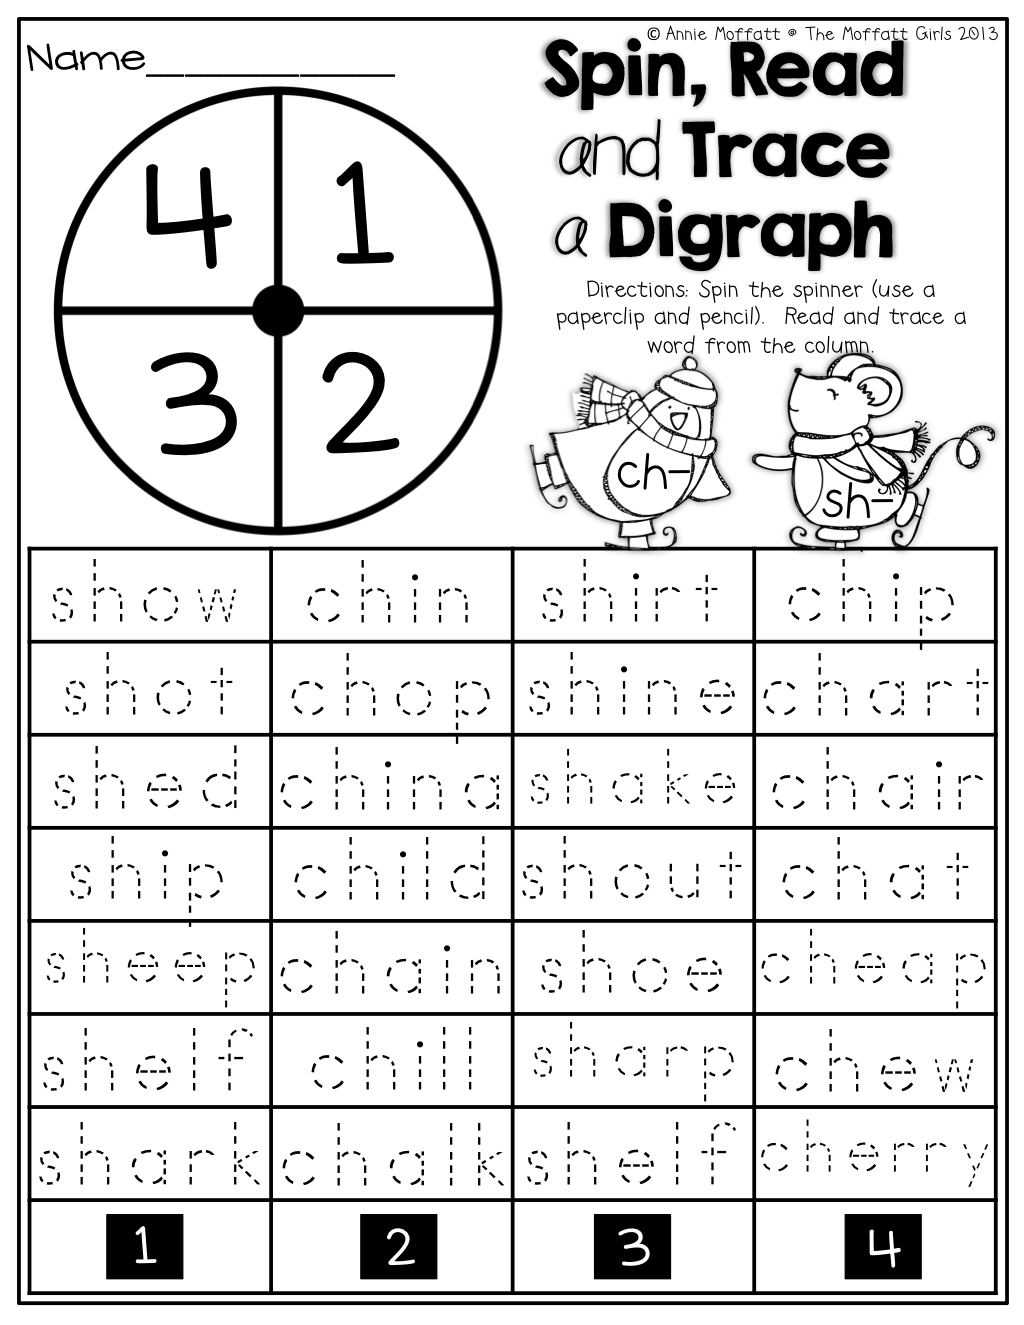 Spin, Read and Trace a Digraph (ch and sh)! | KinderLand ...